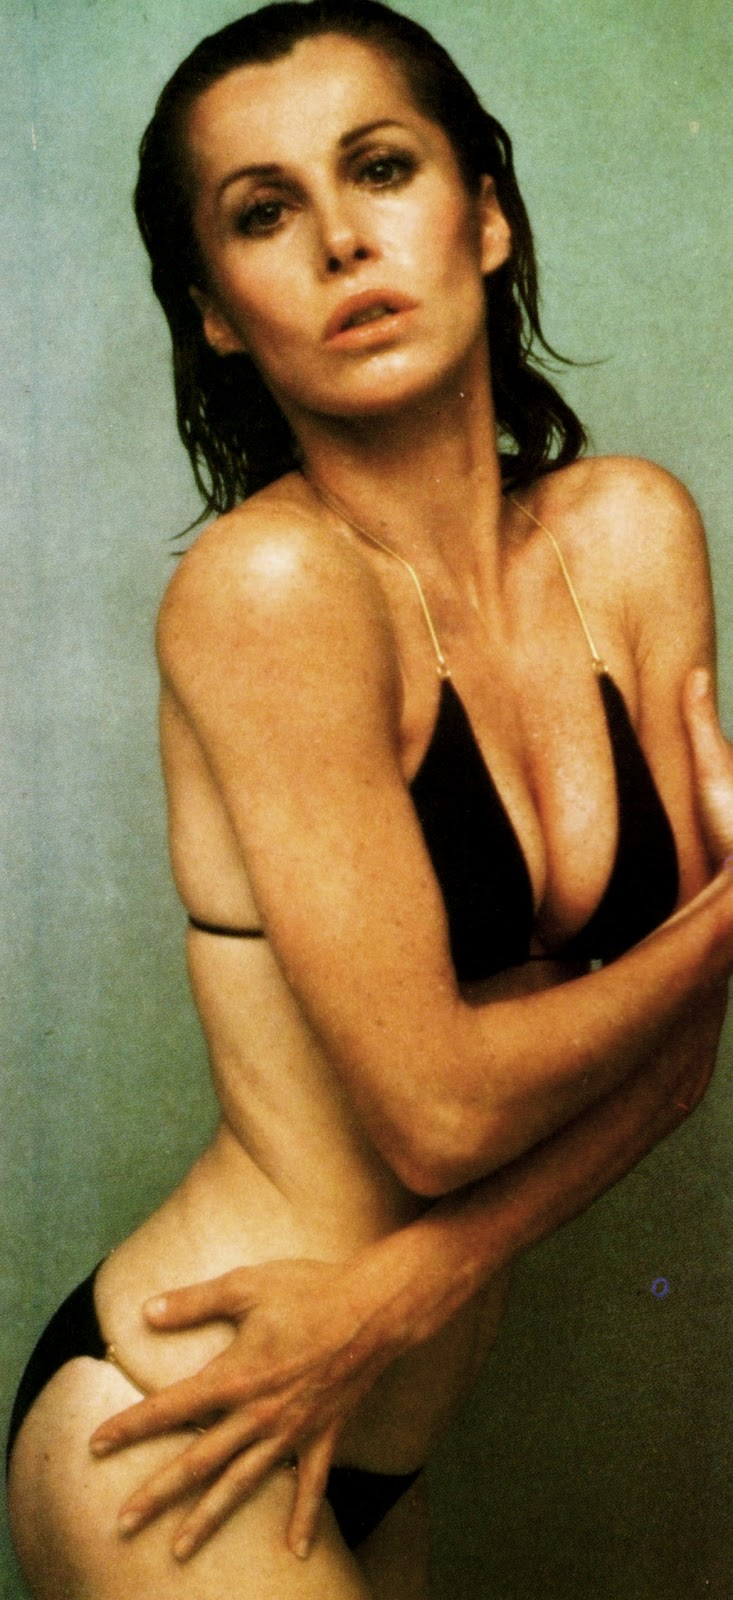 from Frank sheryl crow nude beaver photo